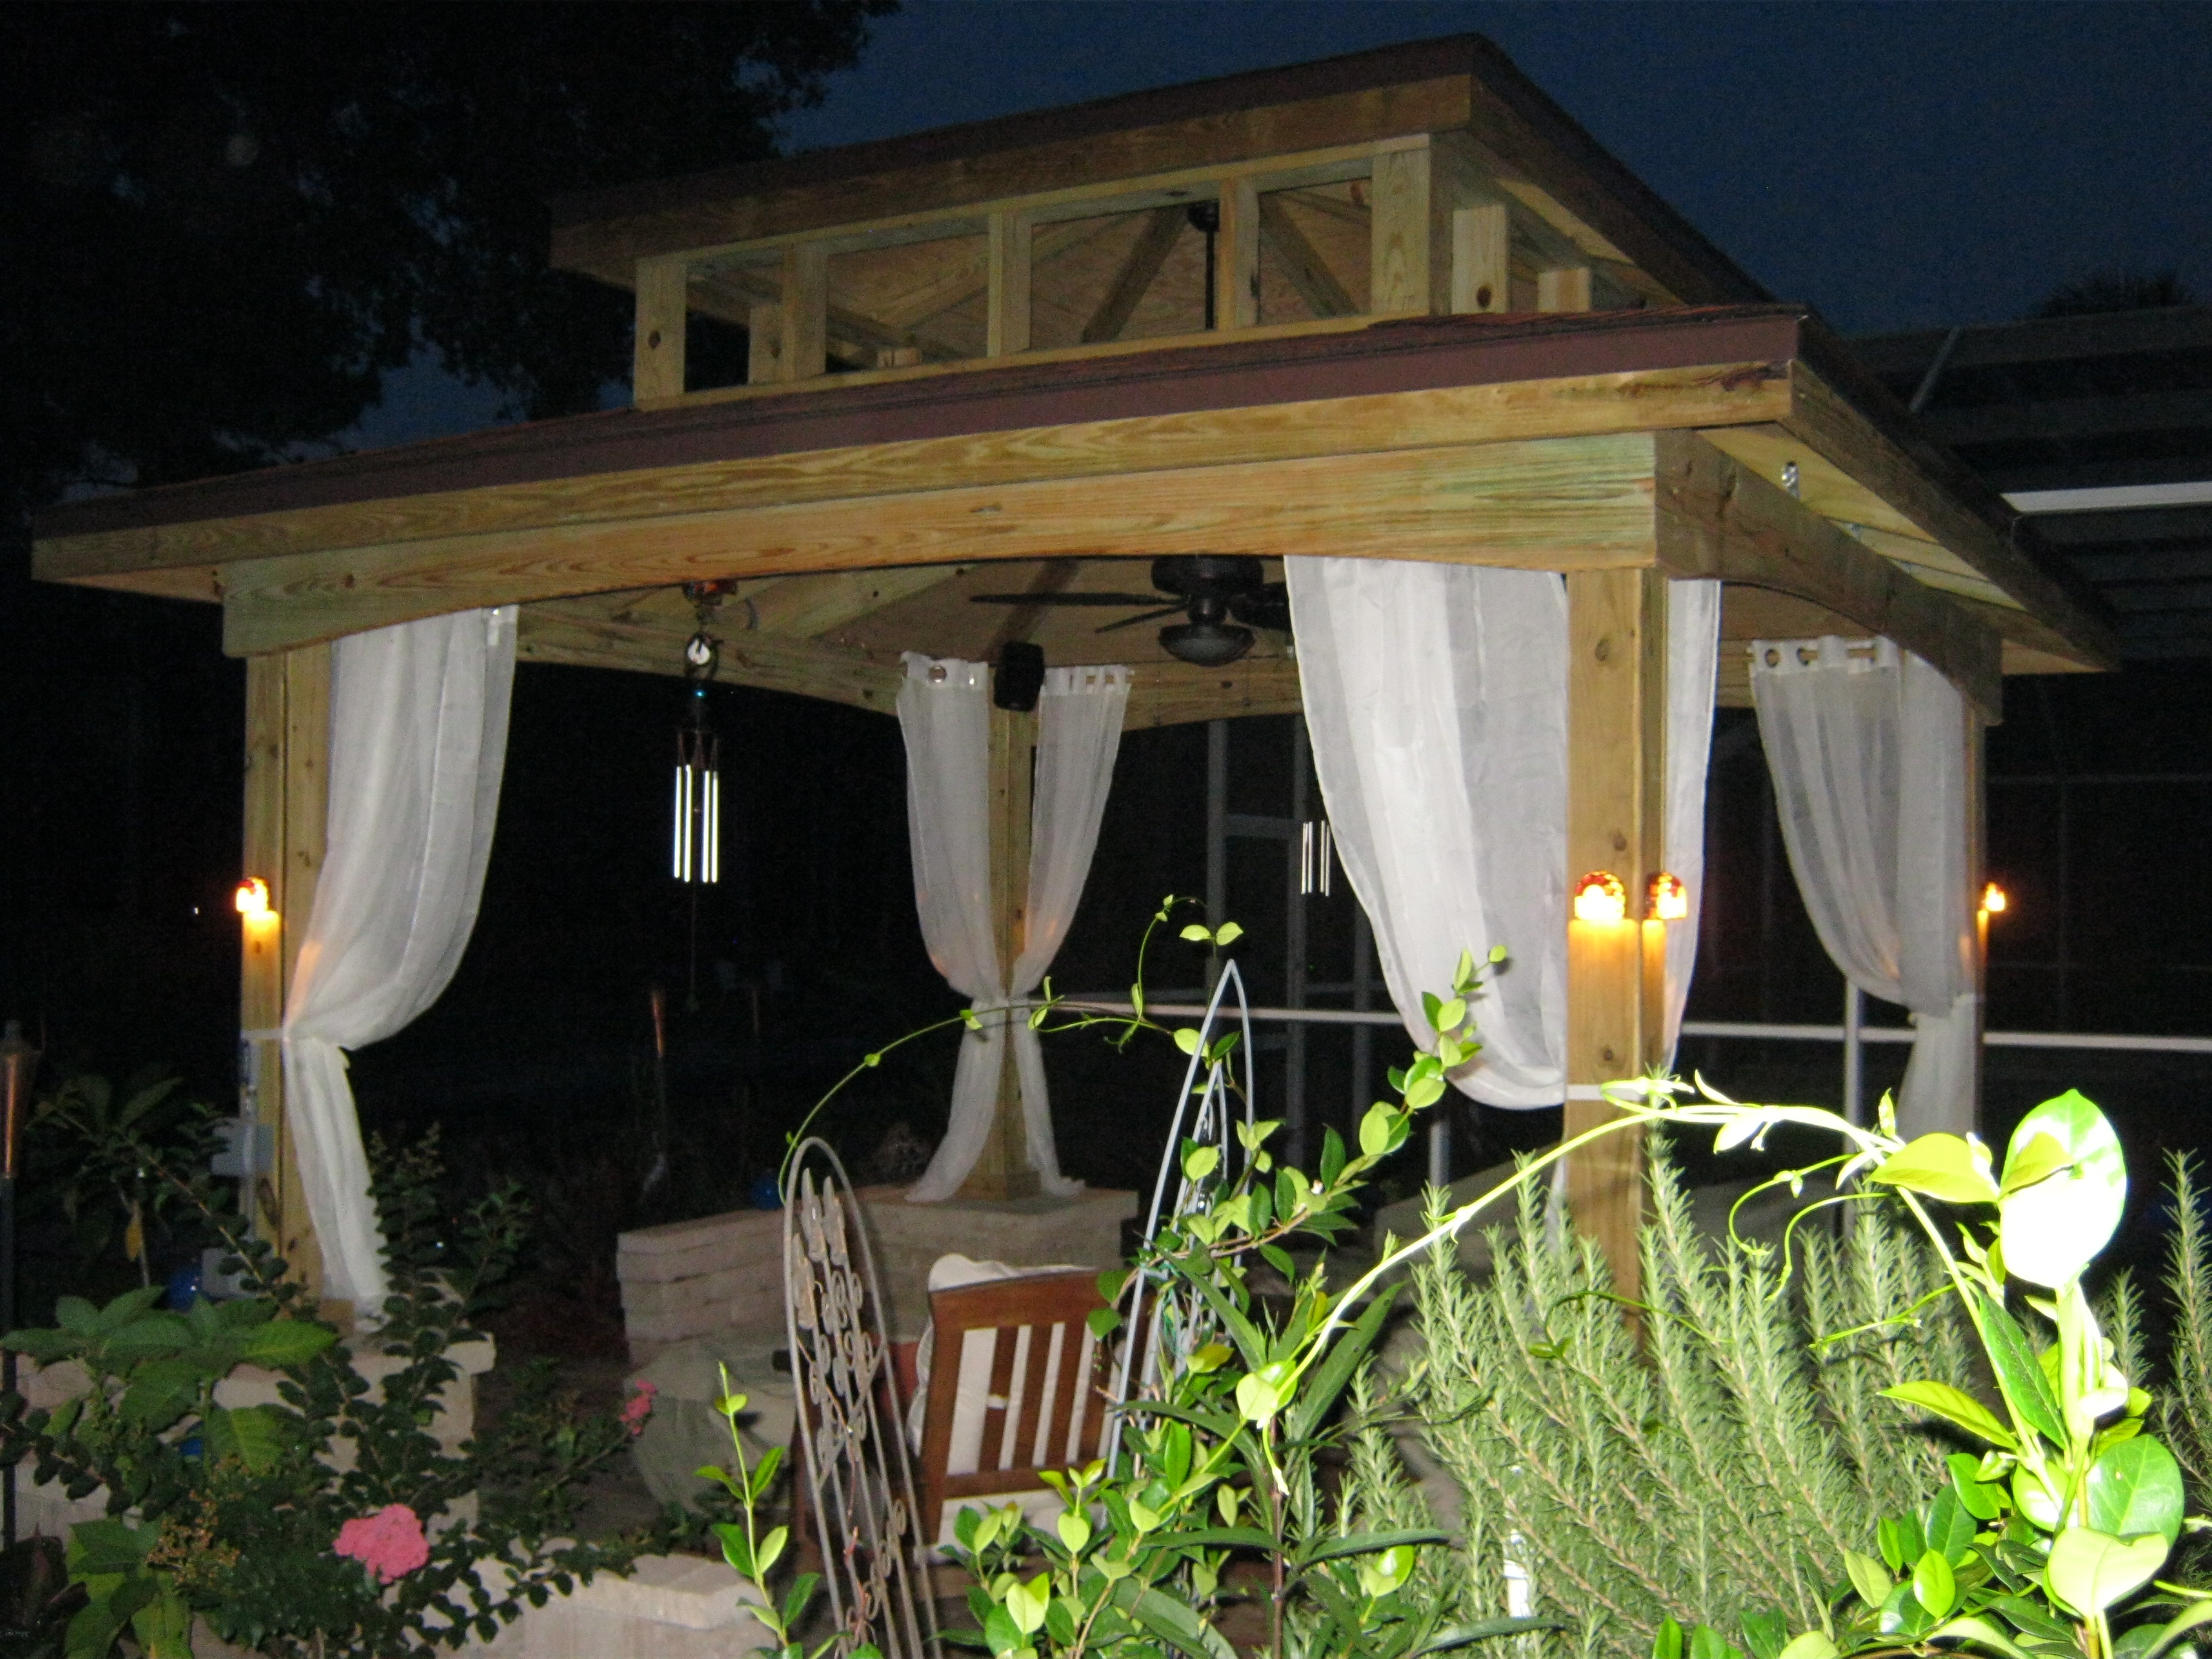 Outdoor Elegant Gazebo With Lighting And White Curtains